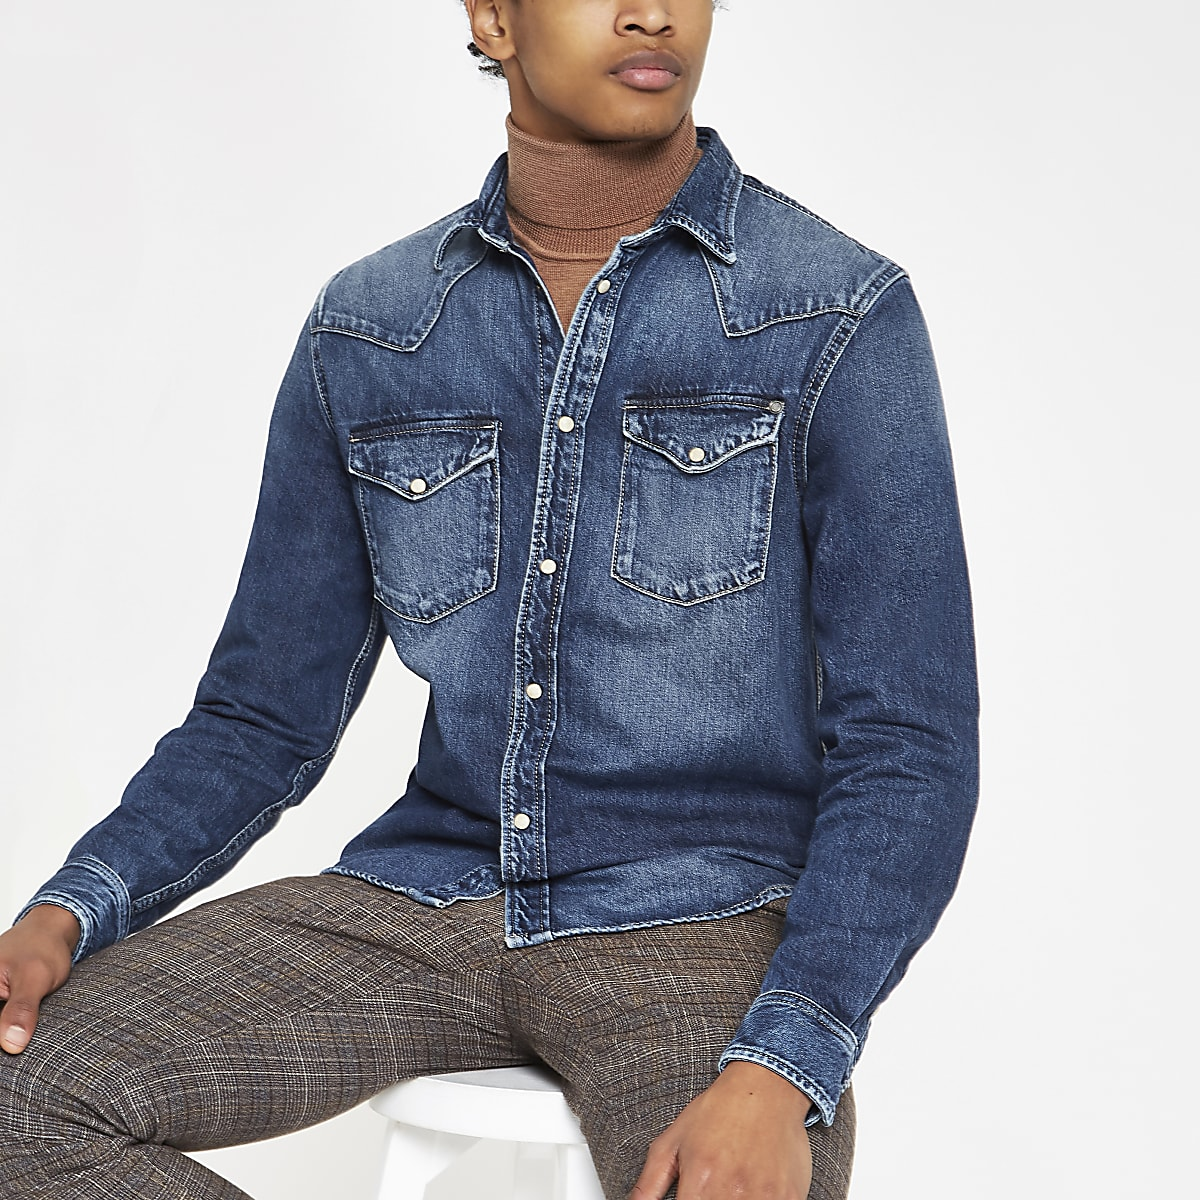 Pepe Jeans blue regular fit denim shirt